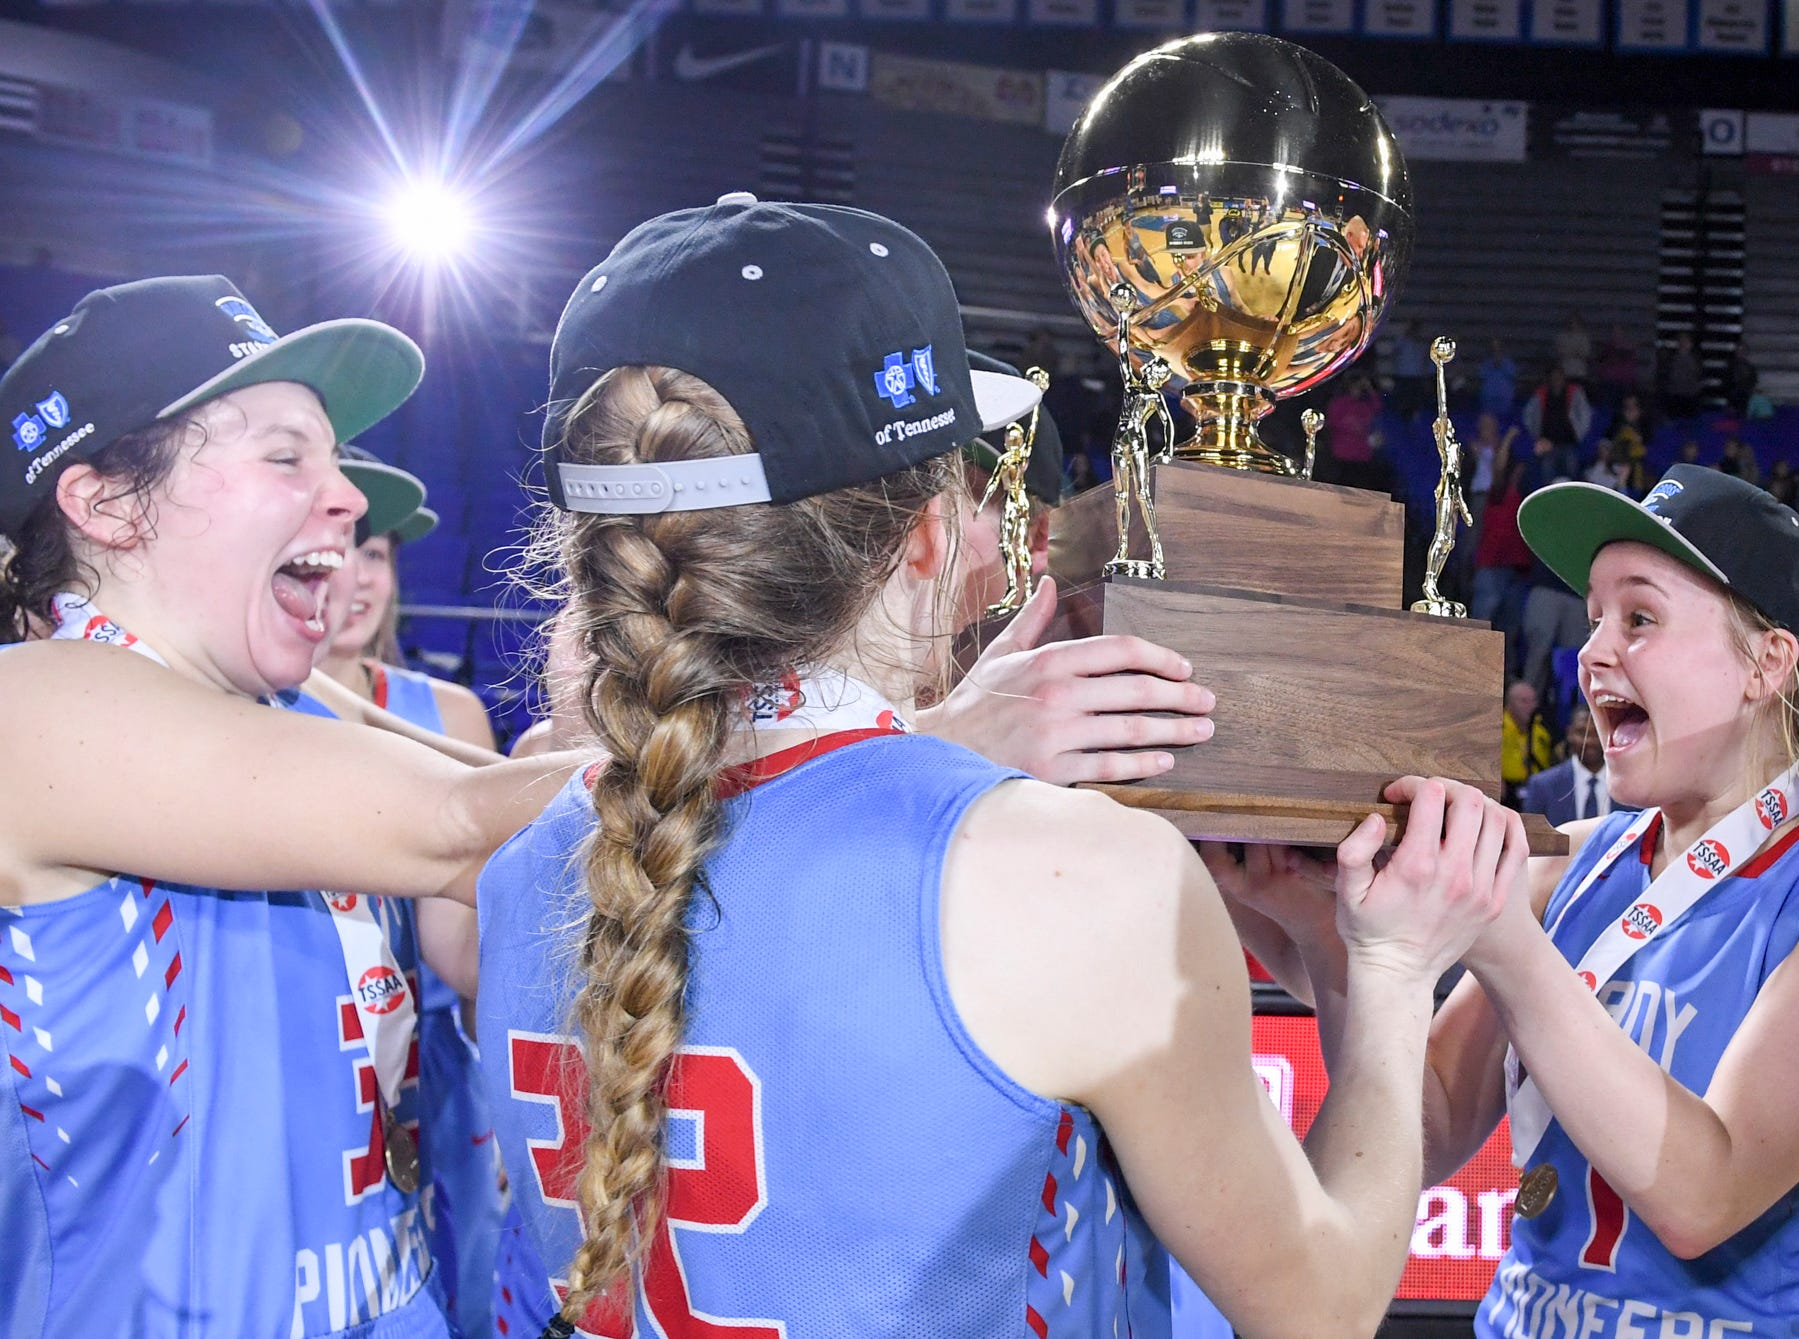 Gibson County's Ashton Lannom (1) smiles with Gibson County's Hannah Ball (35) and Gibson County's KJ White (32) as they raise up the championship trophy at the end of their Class A championship game, Saturday, March 9, 2019, in Murfreesboro. Gibson County defeated Loretto, 50-42 to become the 2019 Class A Champions.